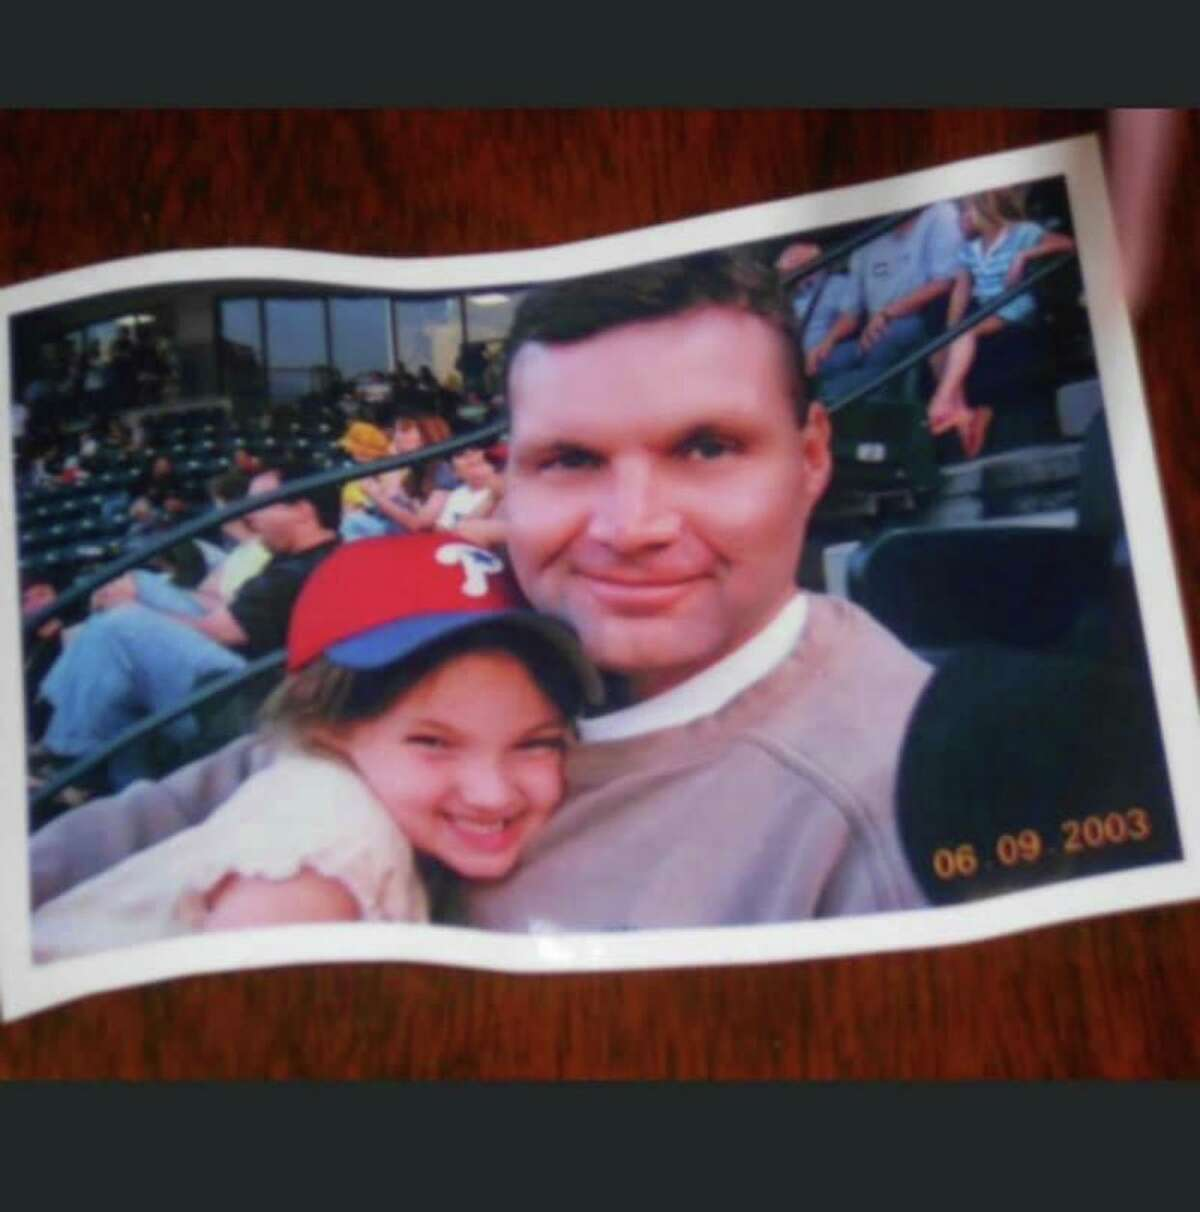 Eugene Baron with his daughter Maureen at a baseball game in 2003.